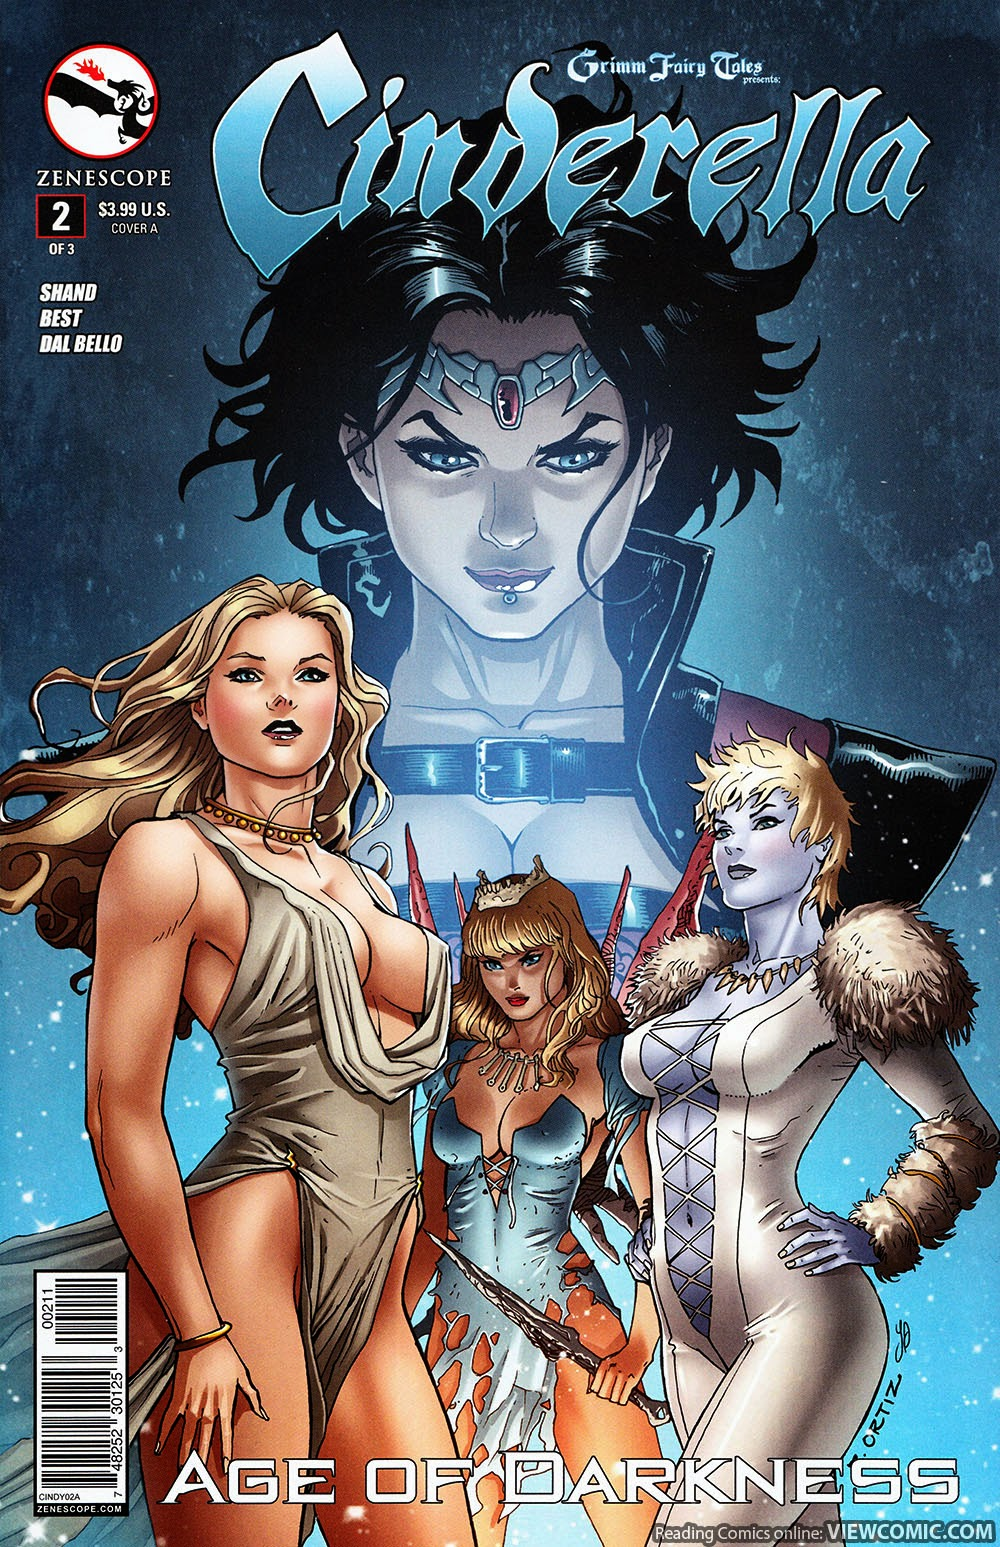 Uncategorized Online Fairy Tales grimm fairy tales presents cinderella viewcomic reading comics 002 2014